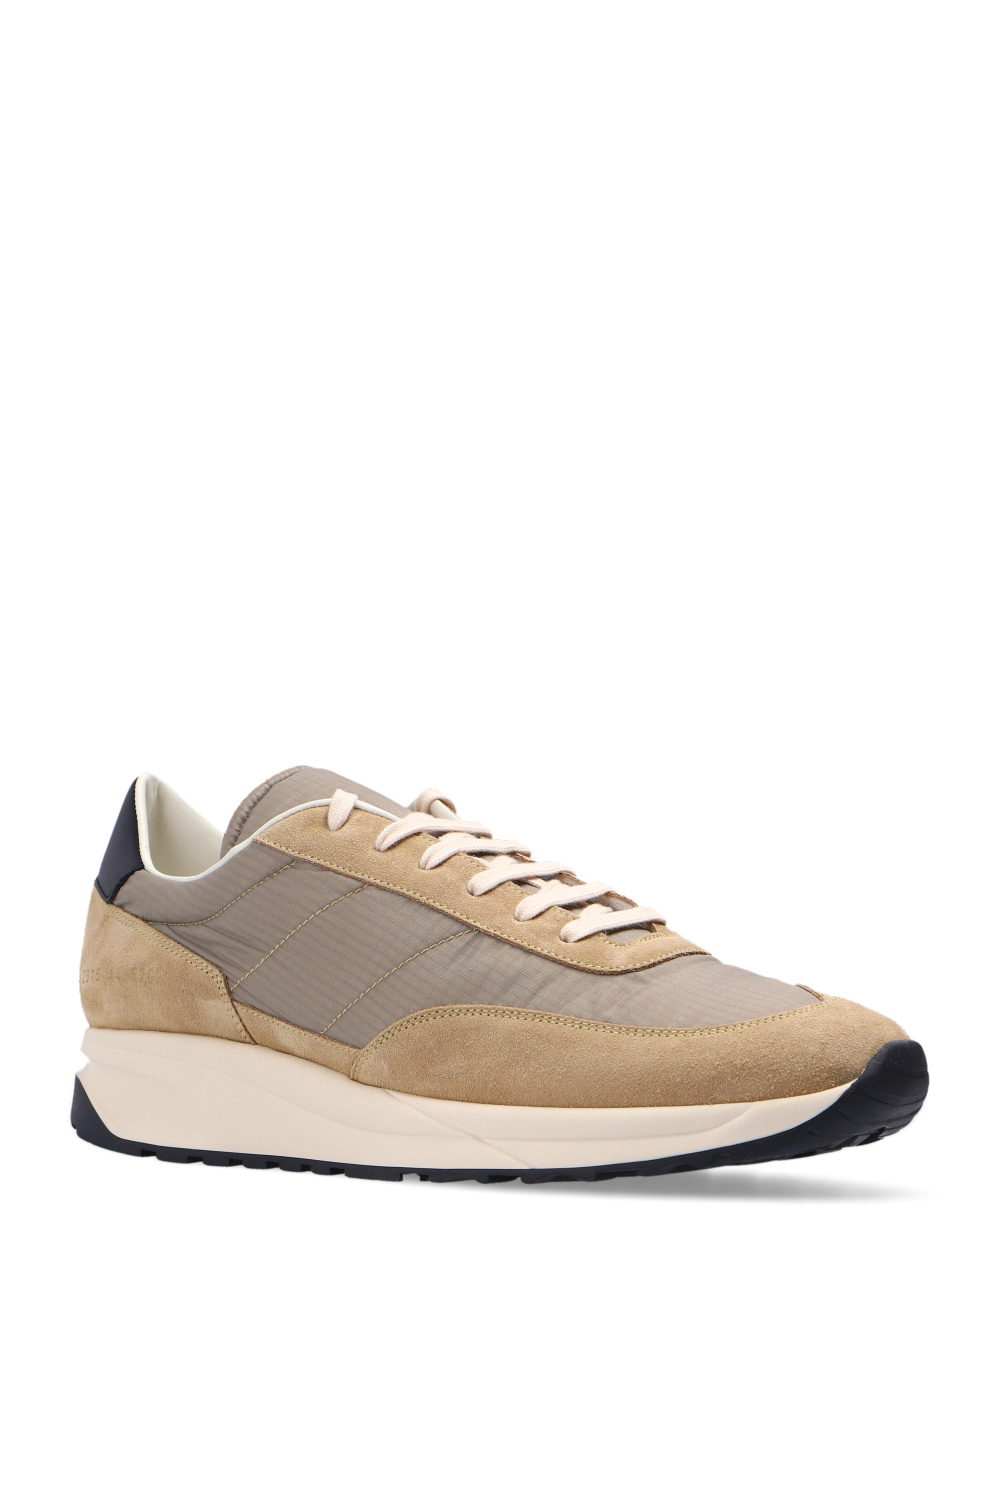 Common Projects 'Track Classic' sneakers